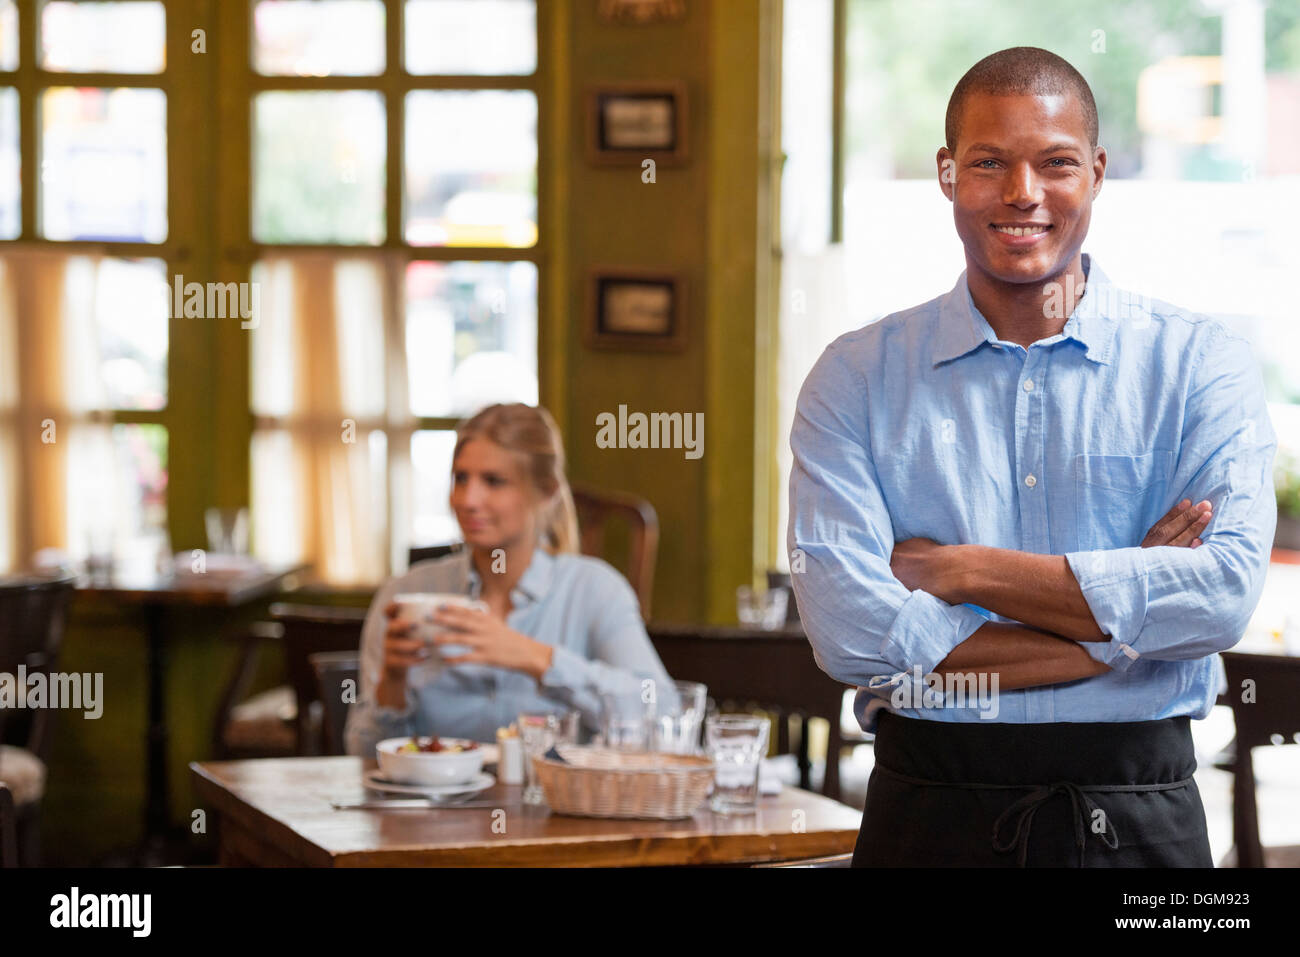 A couple in a city coffee shop. A woman sitting down checking a smart phone. A man standing up with arms folded. - Stock Image